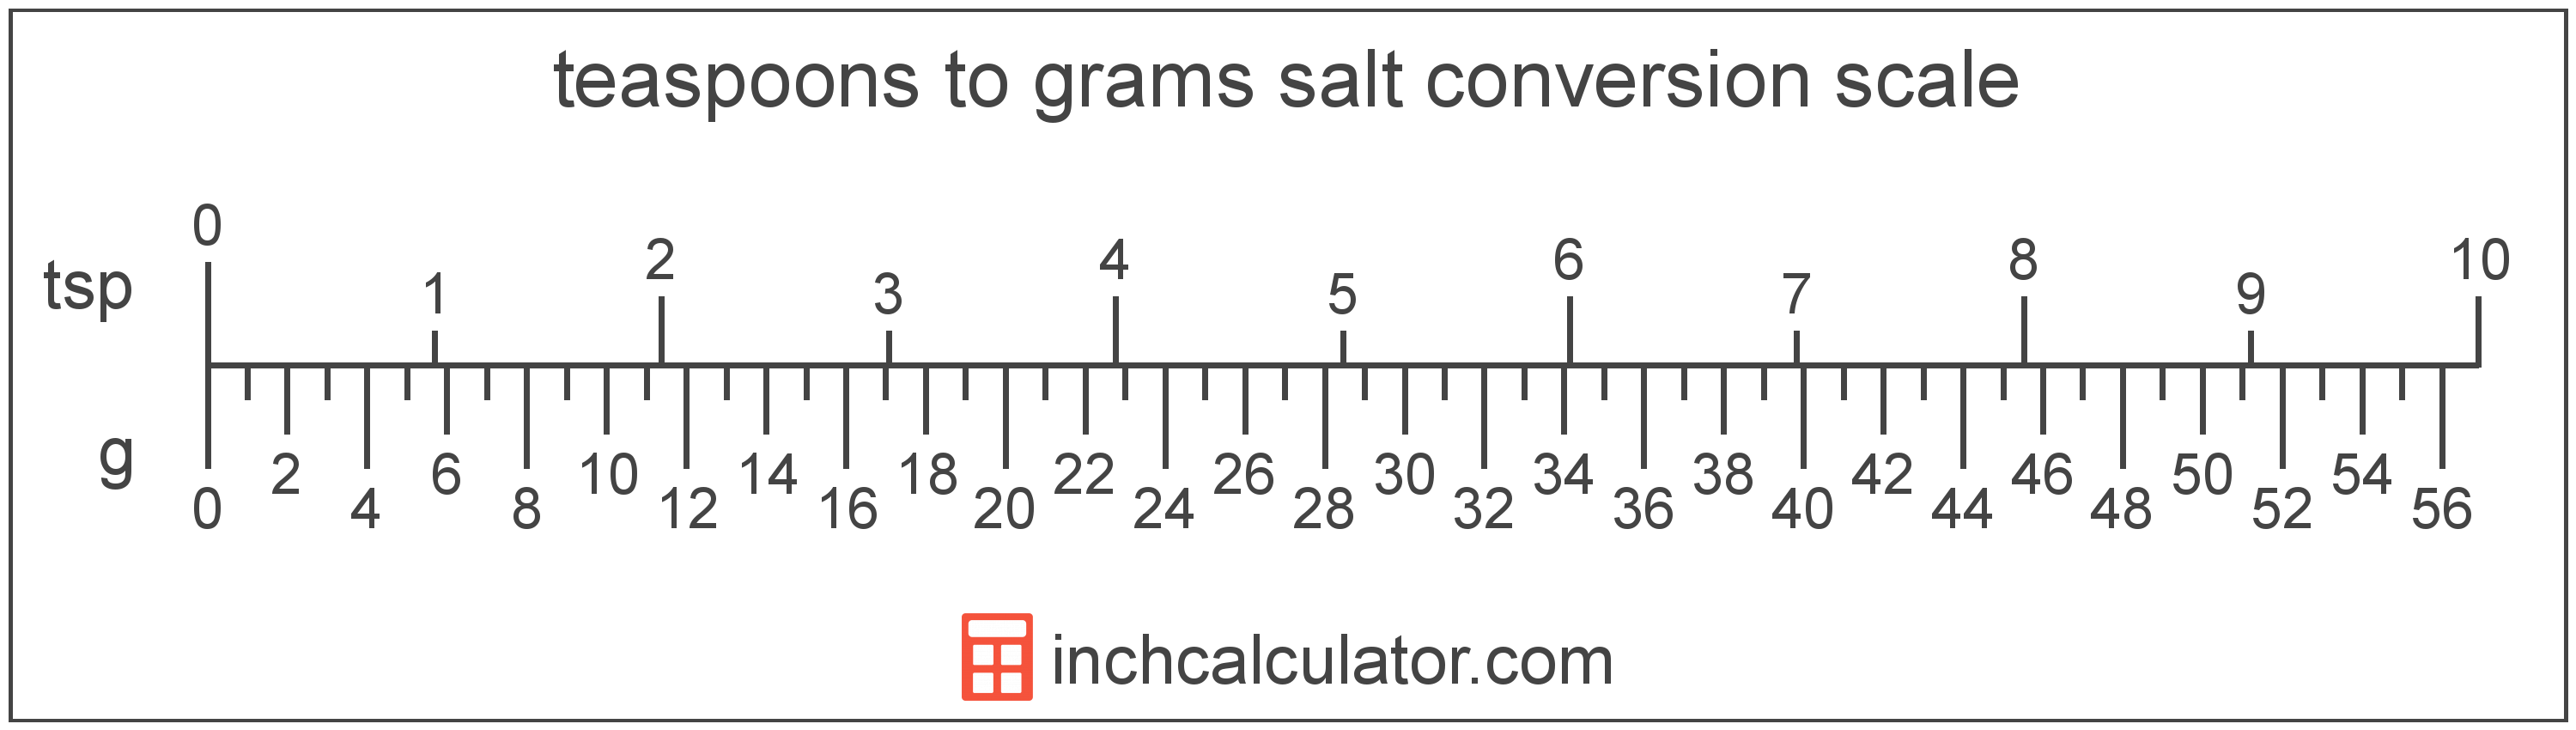 conversion scale showing grams and equivalent teaspoons salt volume values